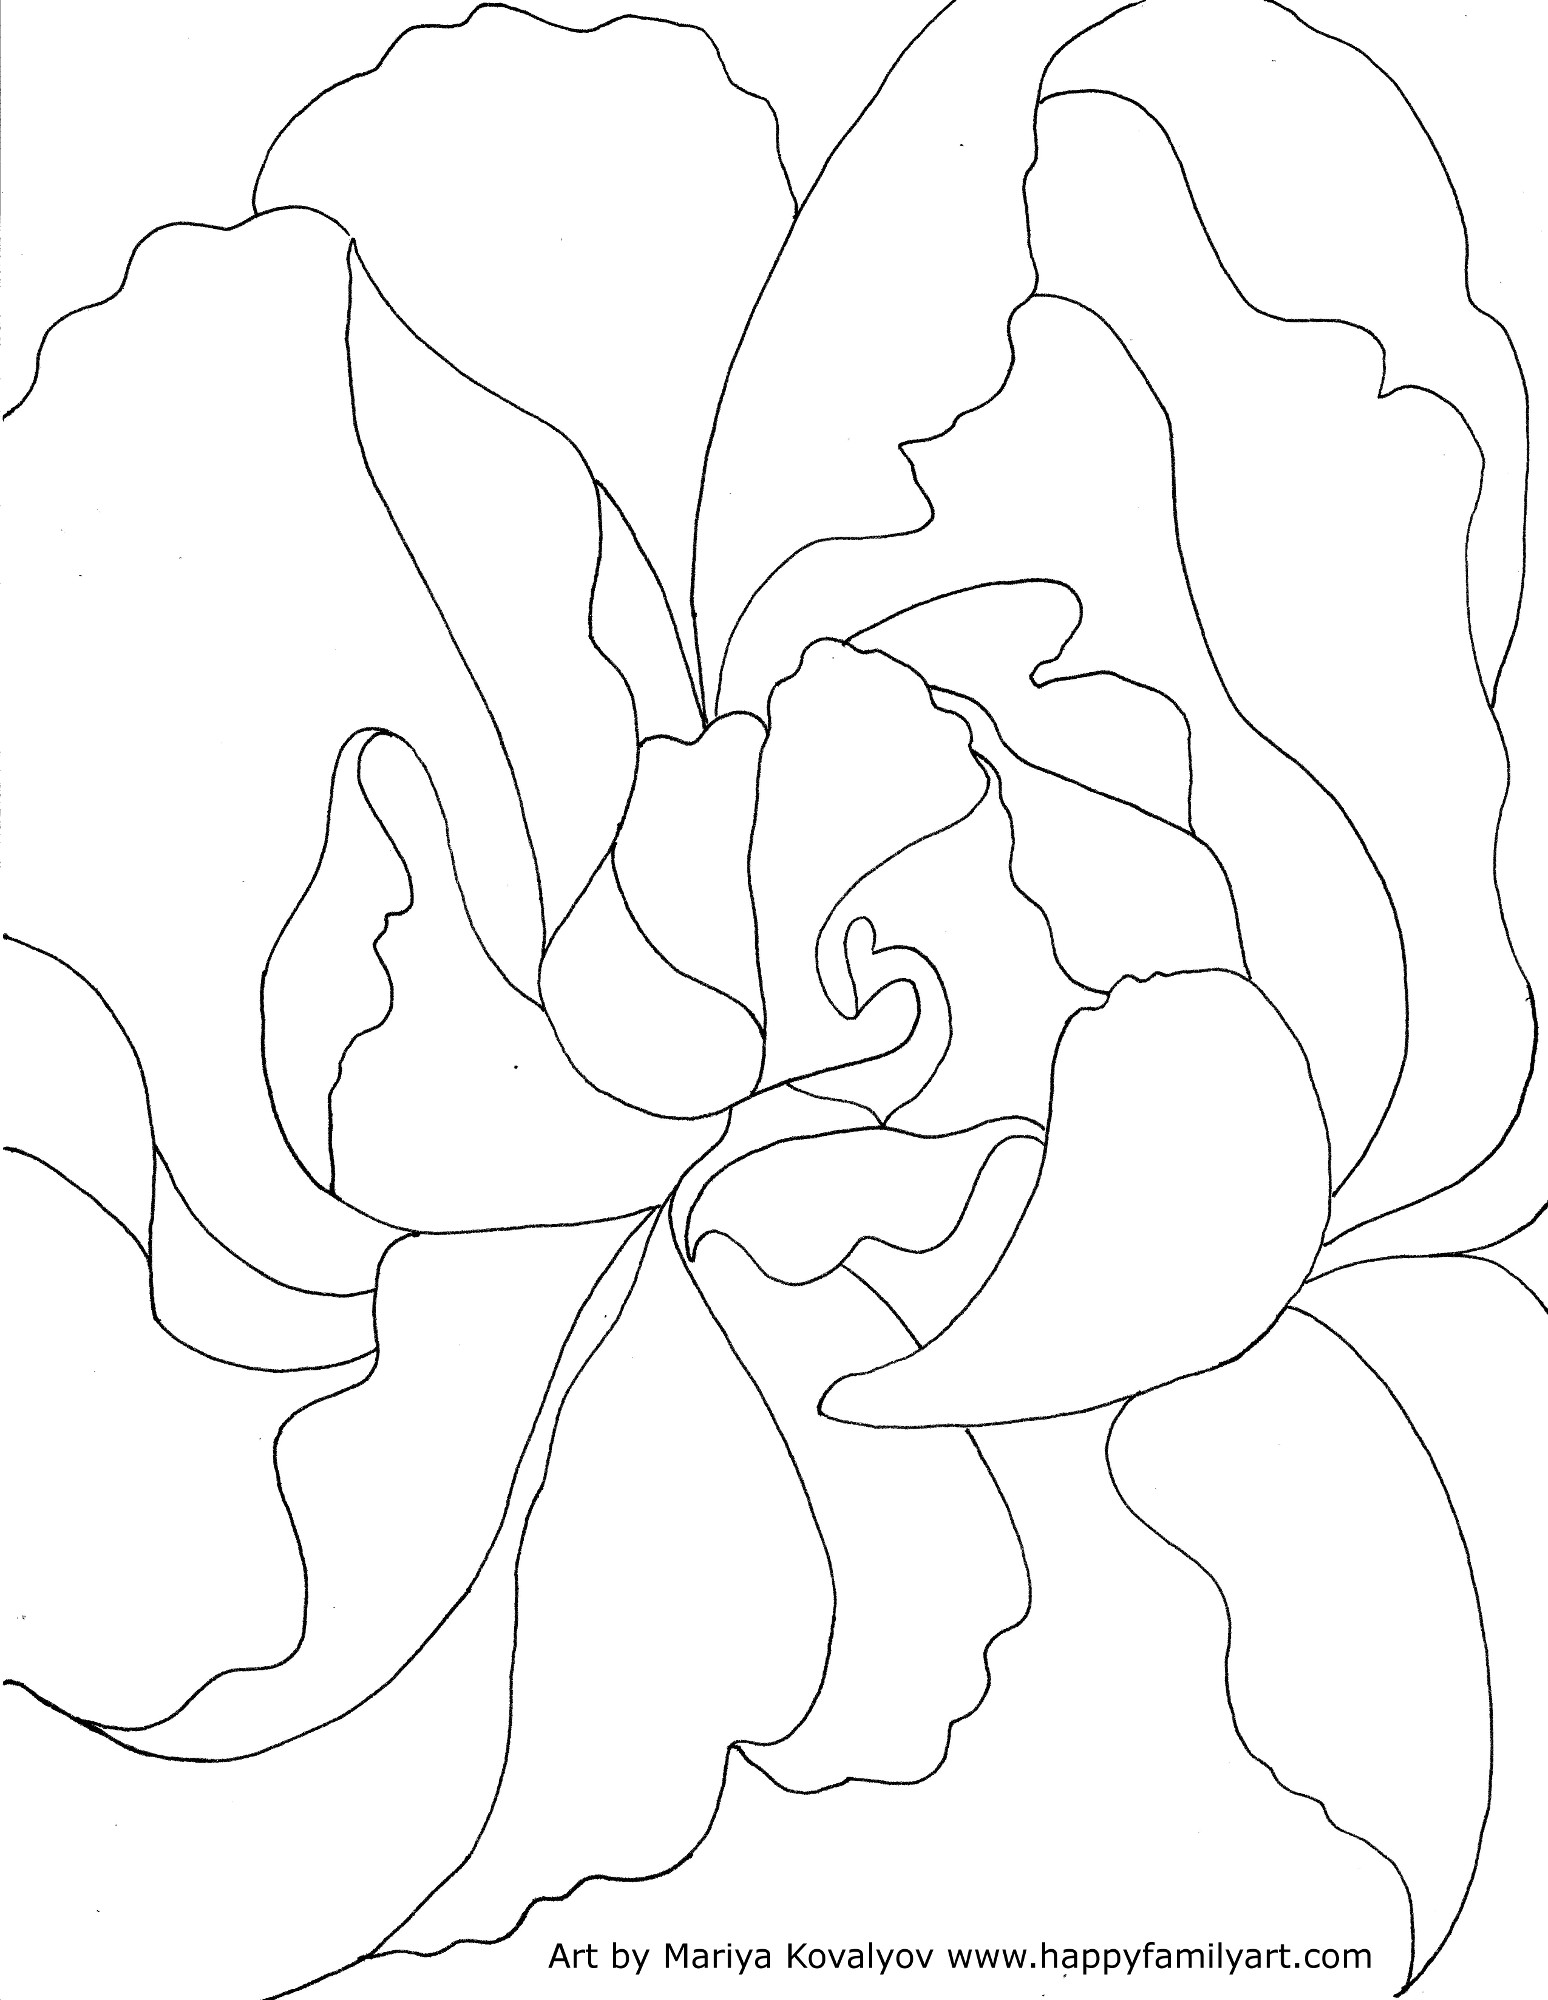 georgia o keeffe coloring pages georgia o keeffe coloring pages at getdrawings free download coloring pages keeffe o georgia